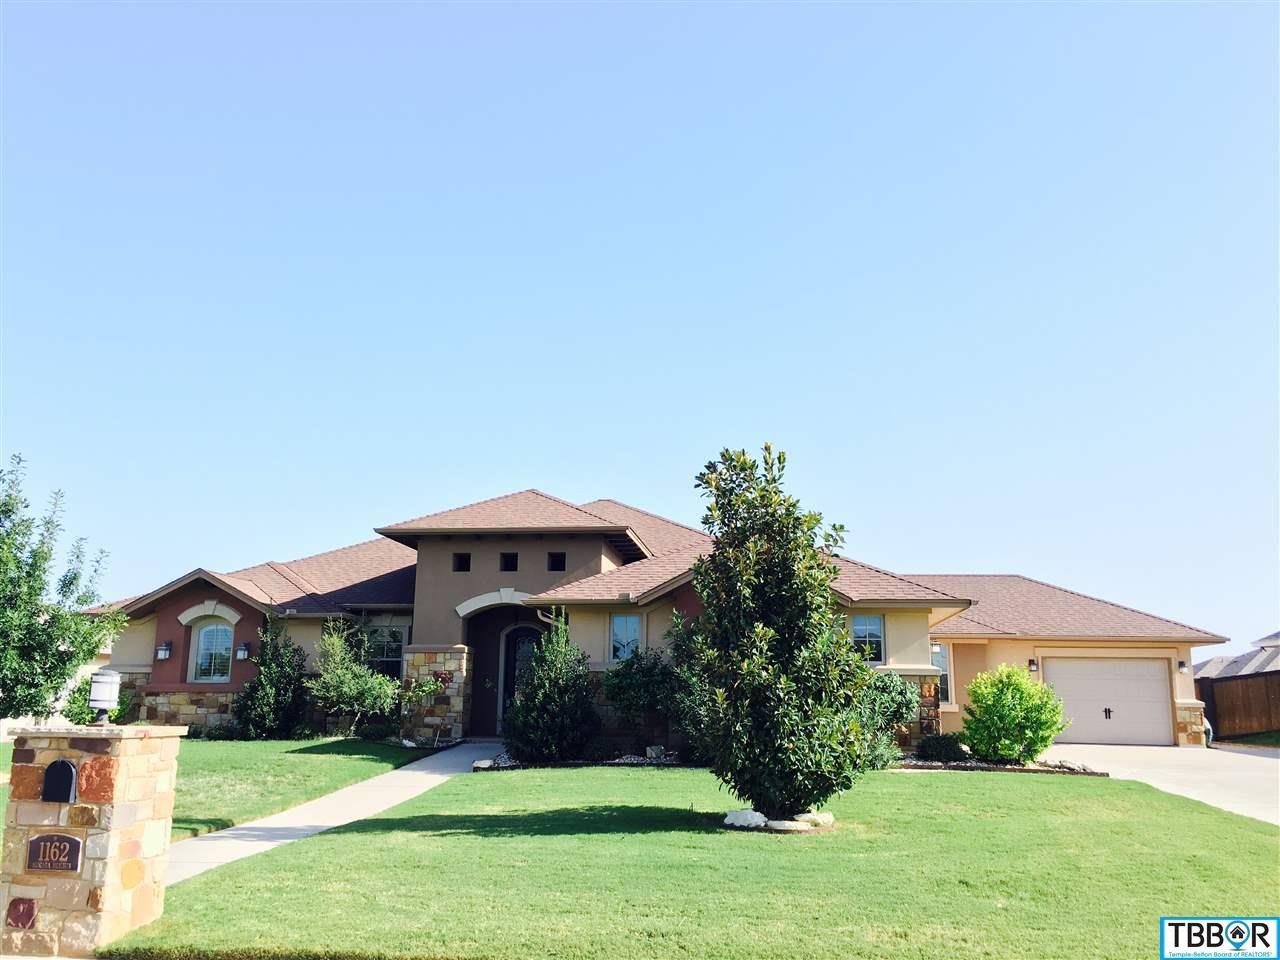 1162 Niagara Heights, Belton TX 76513 - Photo 1